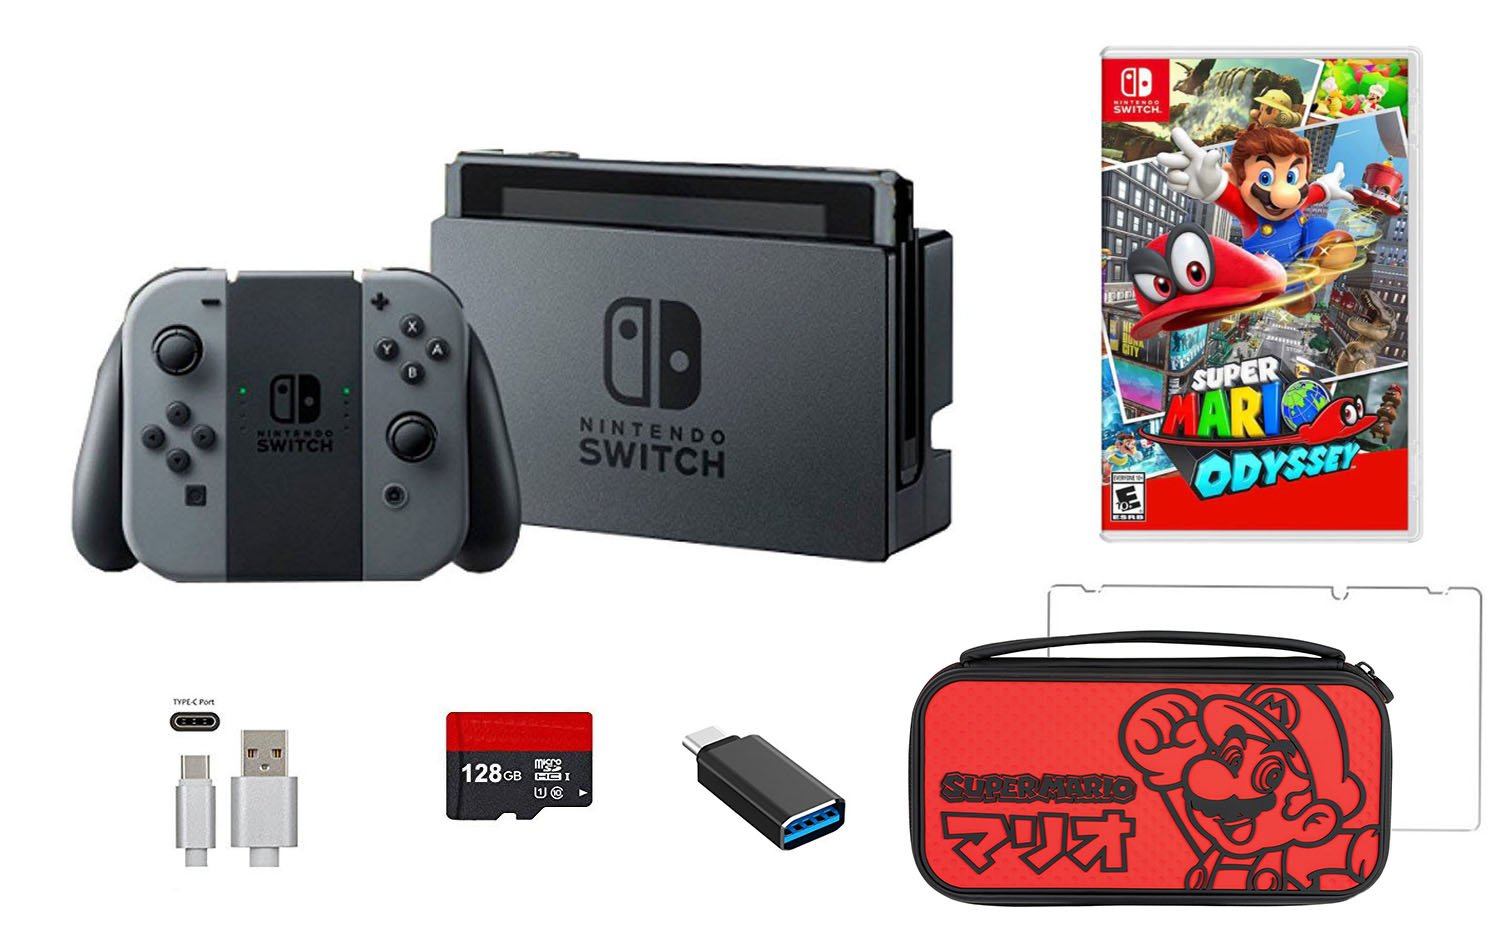 Nintendo Switch Bundle (7 items):Nintendo Switch 32GB Console Gray Joy-con,128GB Micro SD Memory Card,HDMI Cable,USB C Adapter,Screen Protector,Console Case - Red and Mario Odyssey Game Disc